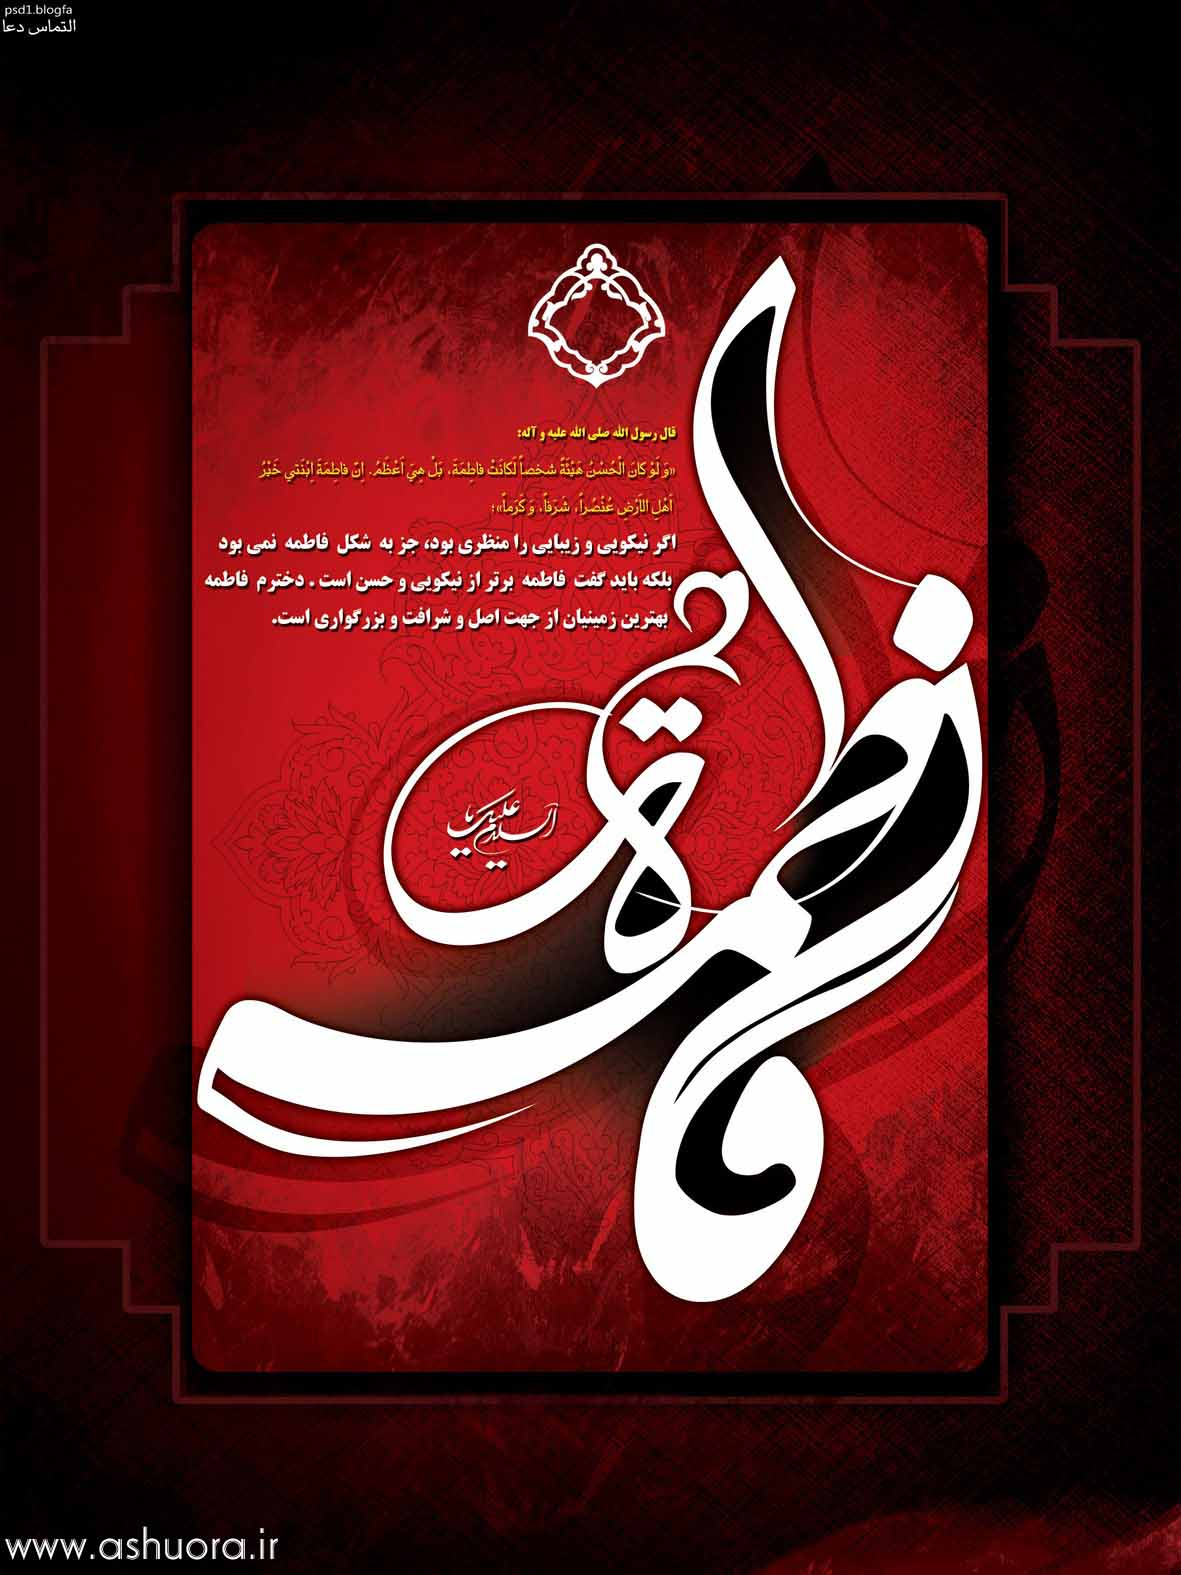 http://up.fadac.ir/up/karballa/Pictures/ahlebeit/h-zahra/01/shahadate_hazratezahra17.JPG